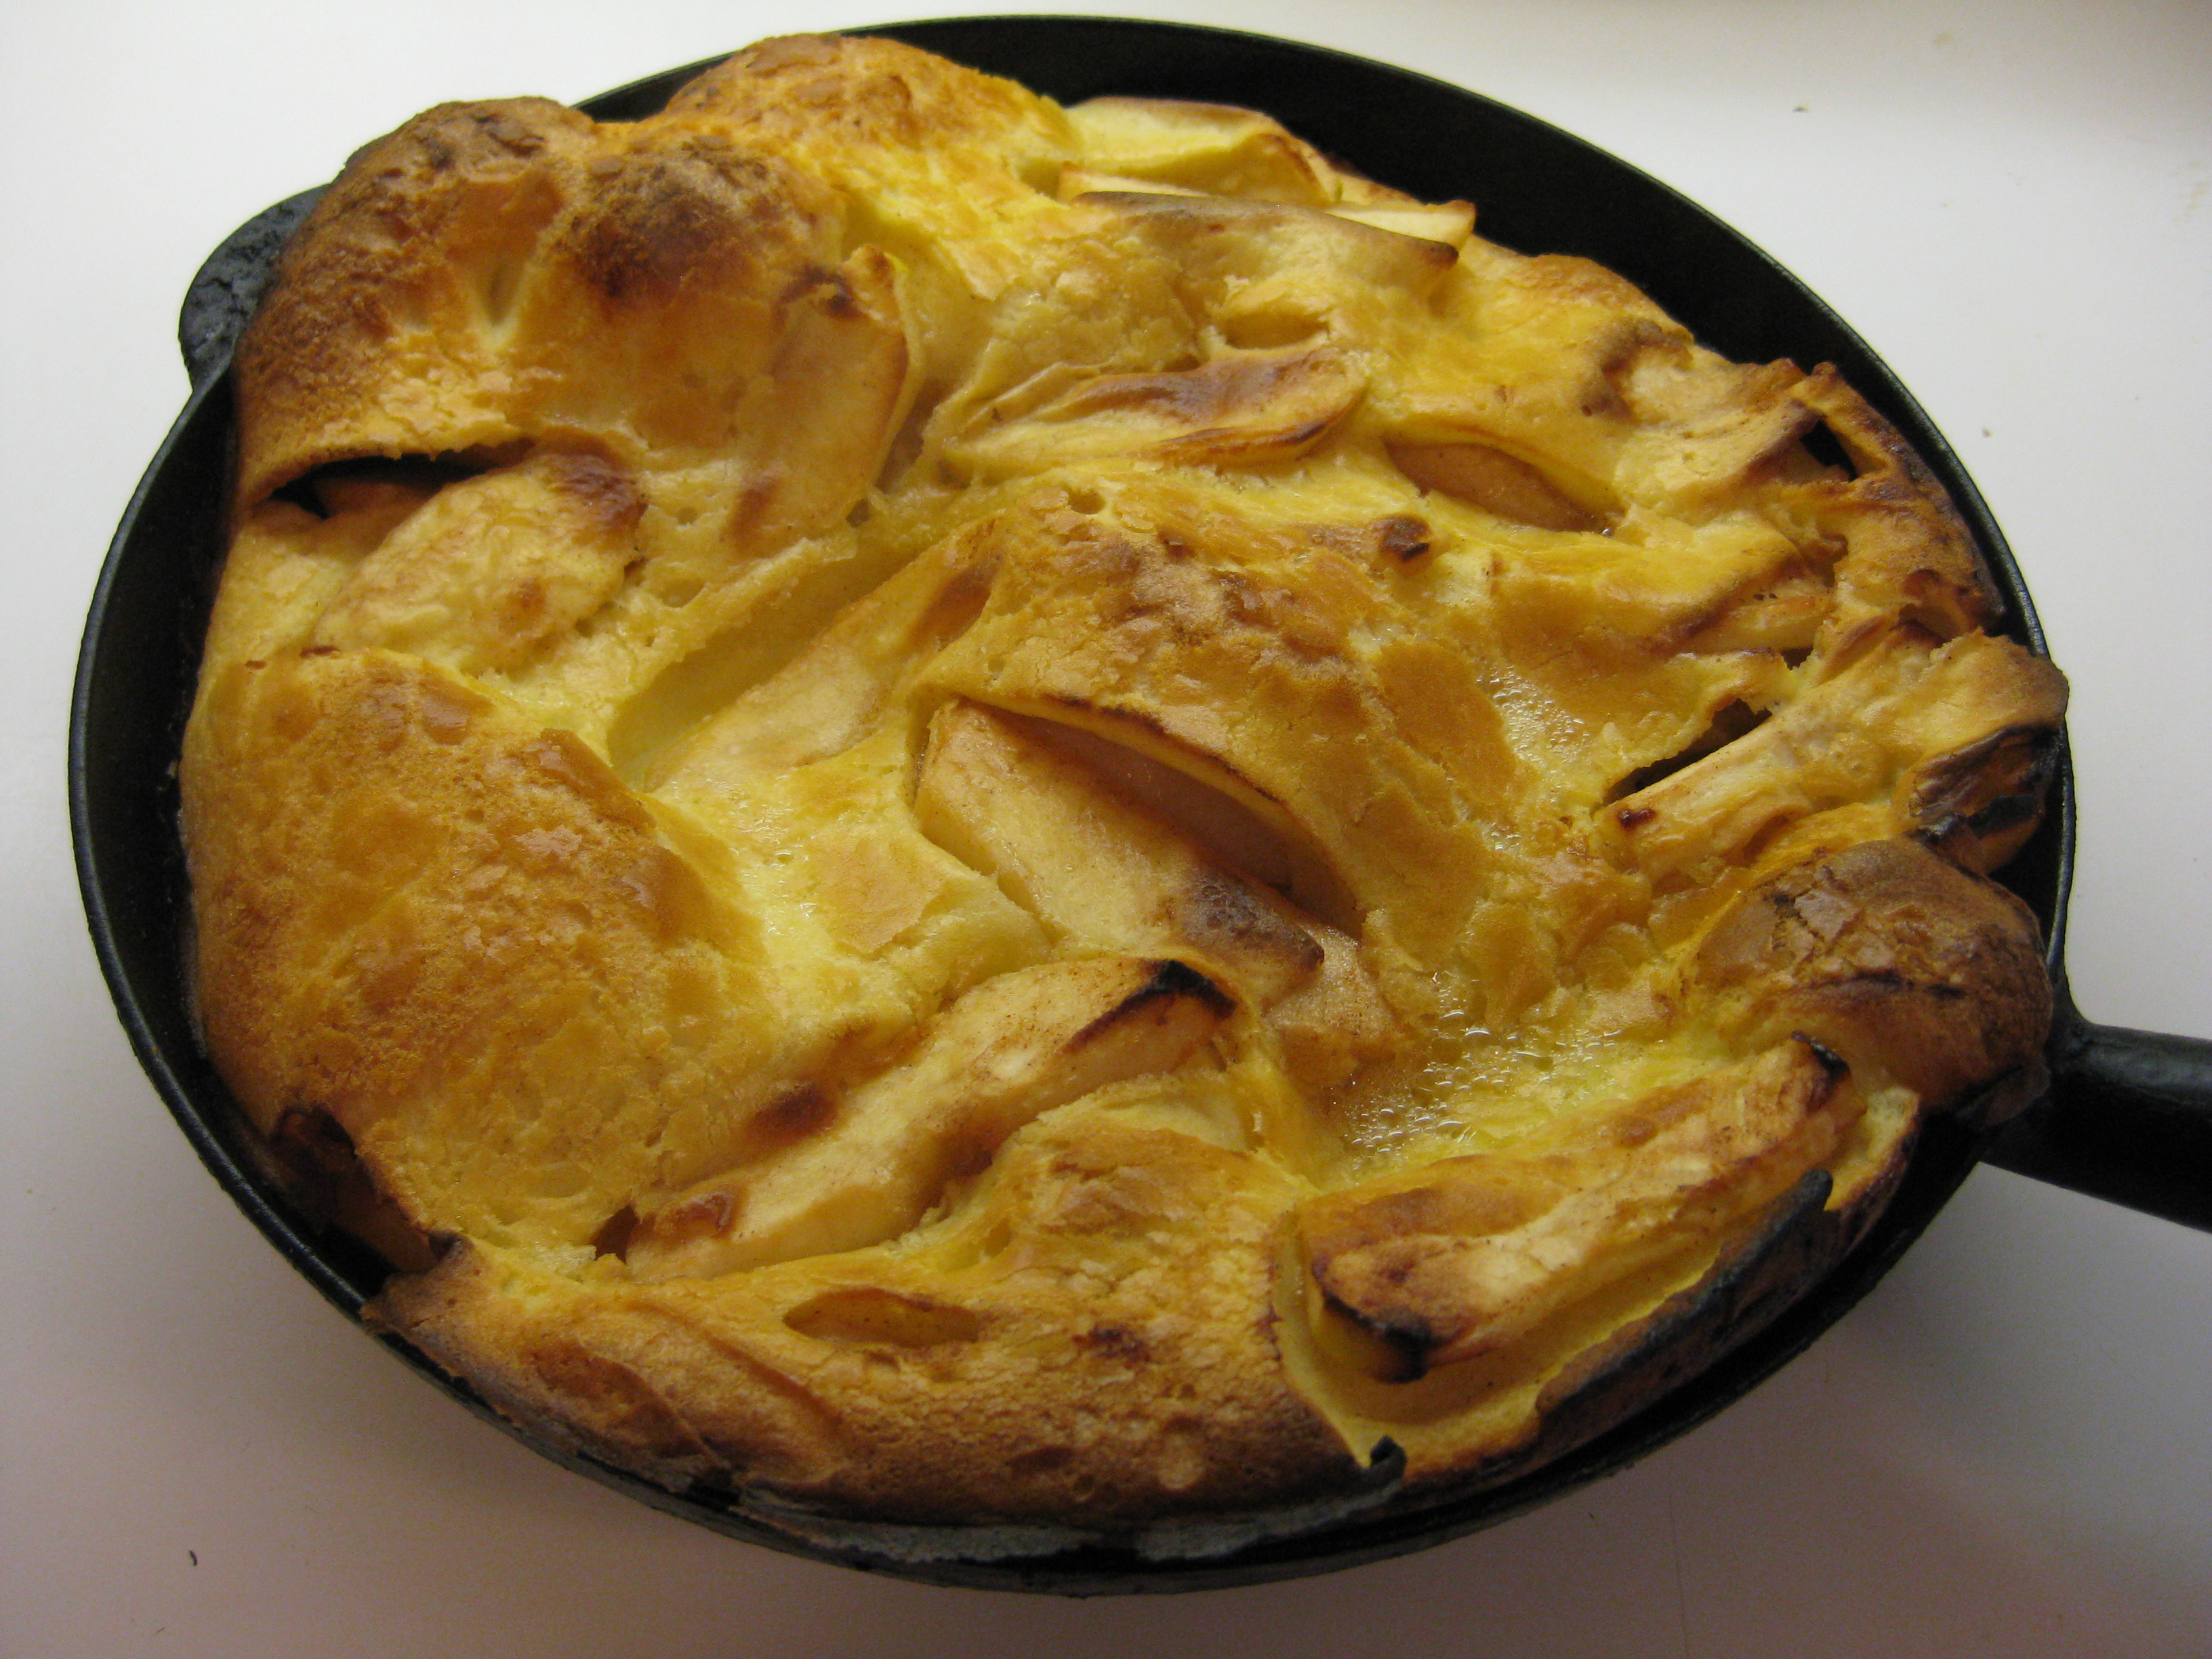 Oven-baked Apple Pancake adapted from Marion Cunningham's Breakfast ...